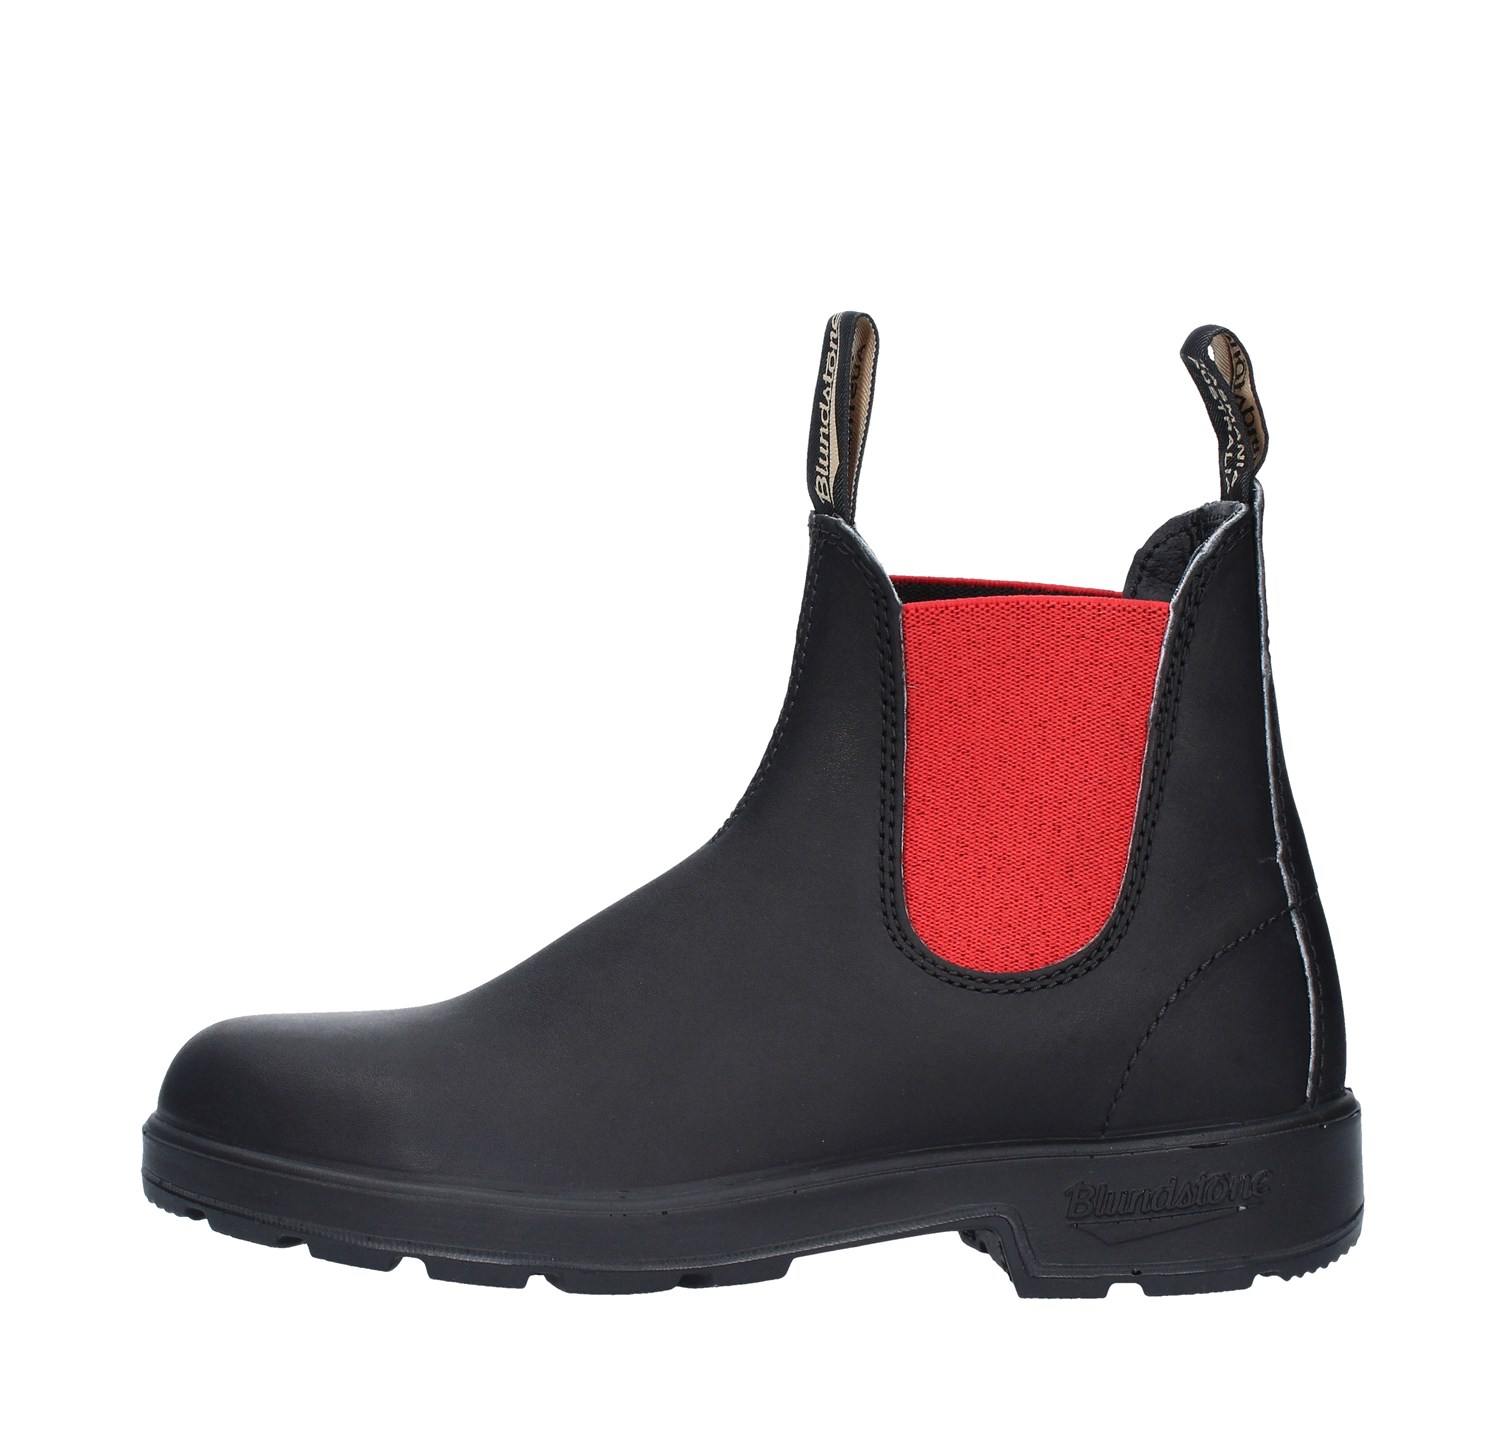 BLUNDSTONE 508 STIVALETTI AUSTRALIANI PREMIUM LEATHER VOLTAN BLACK RED